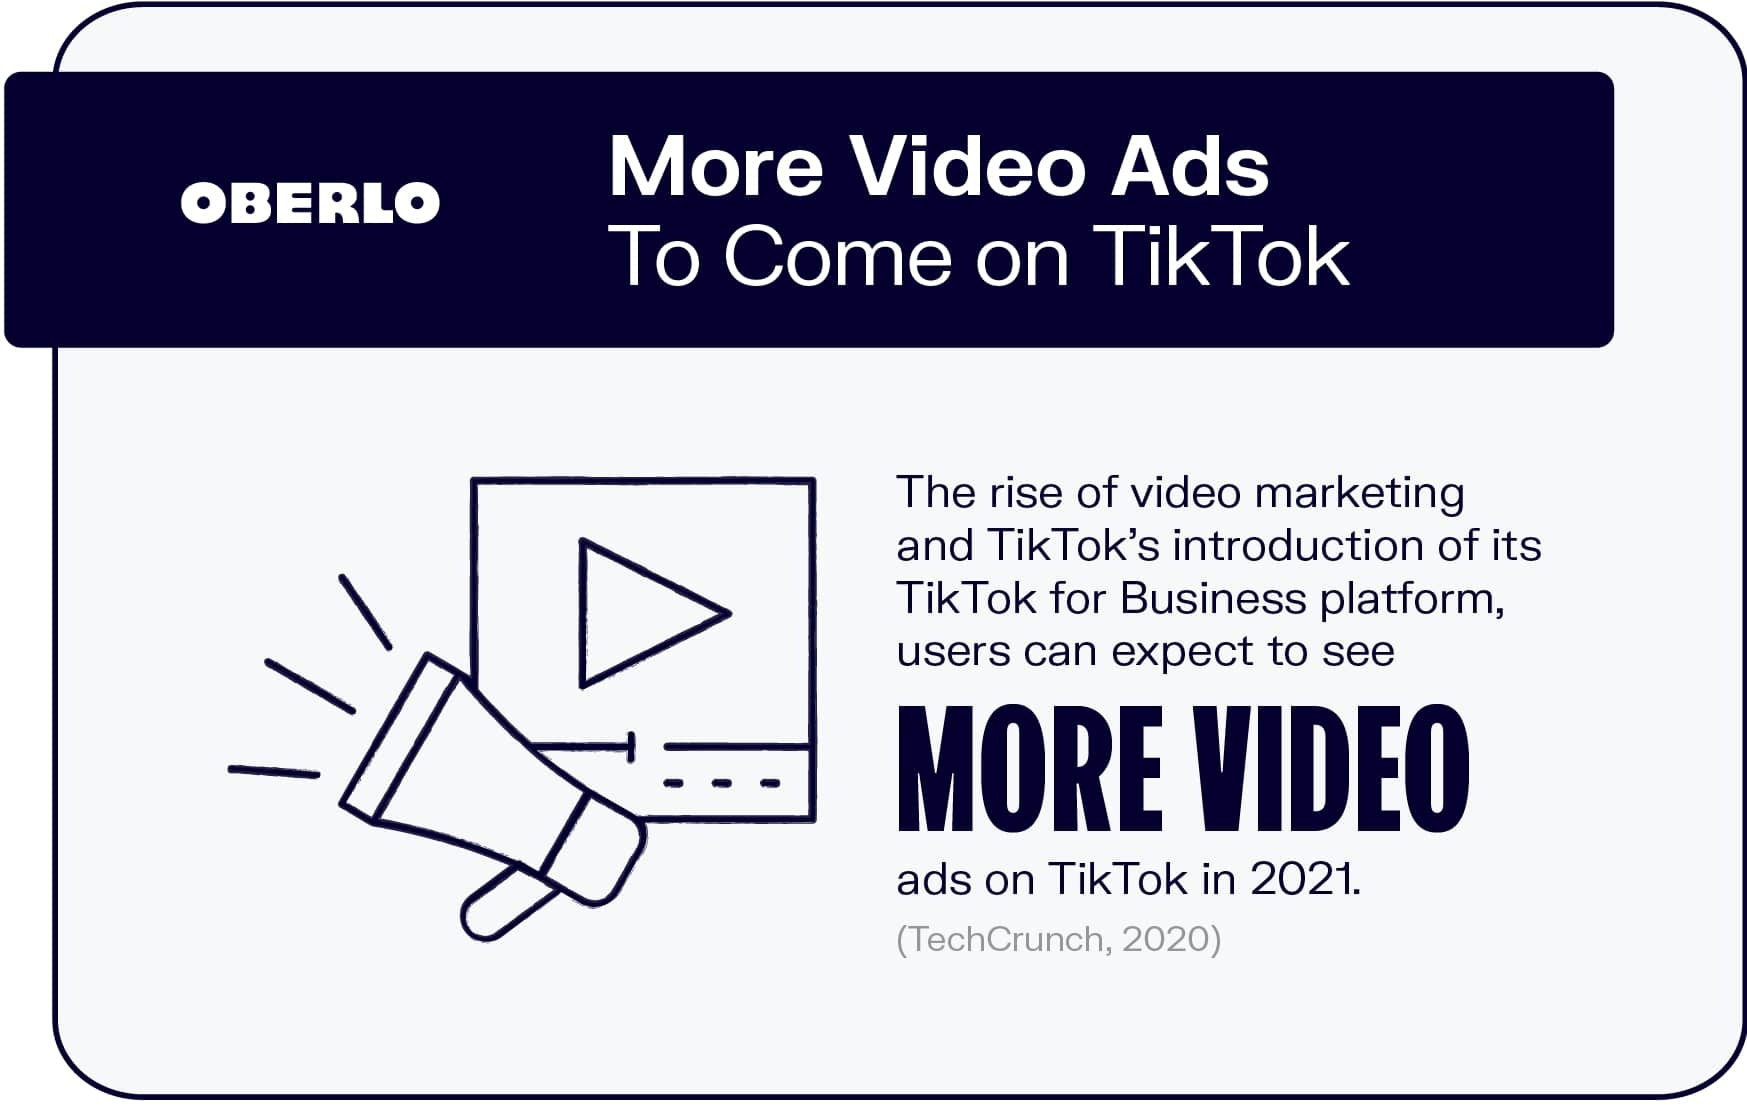 More Video Ads To Come on TikTok